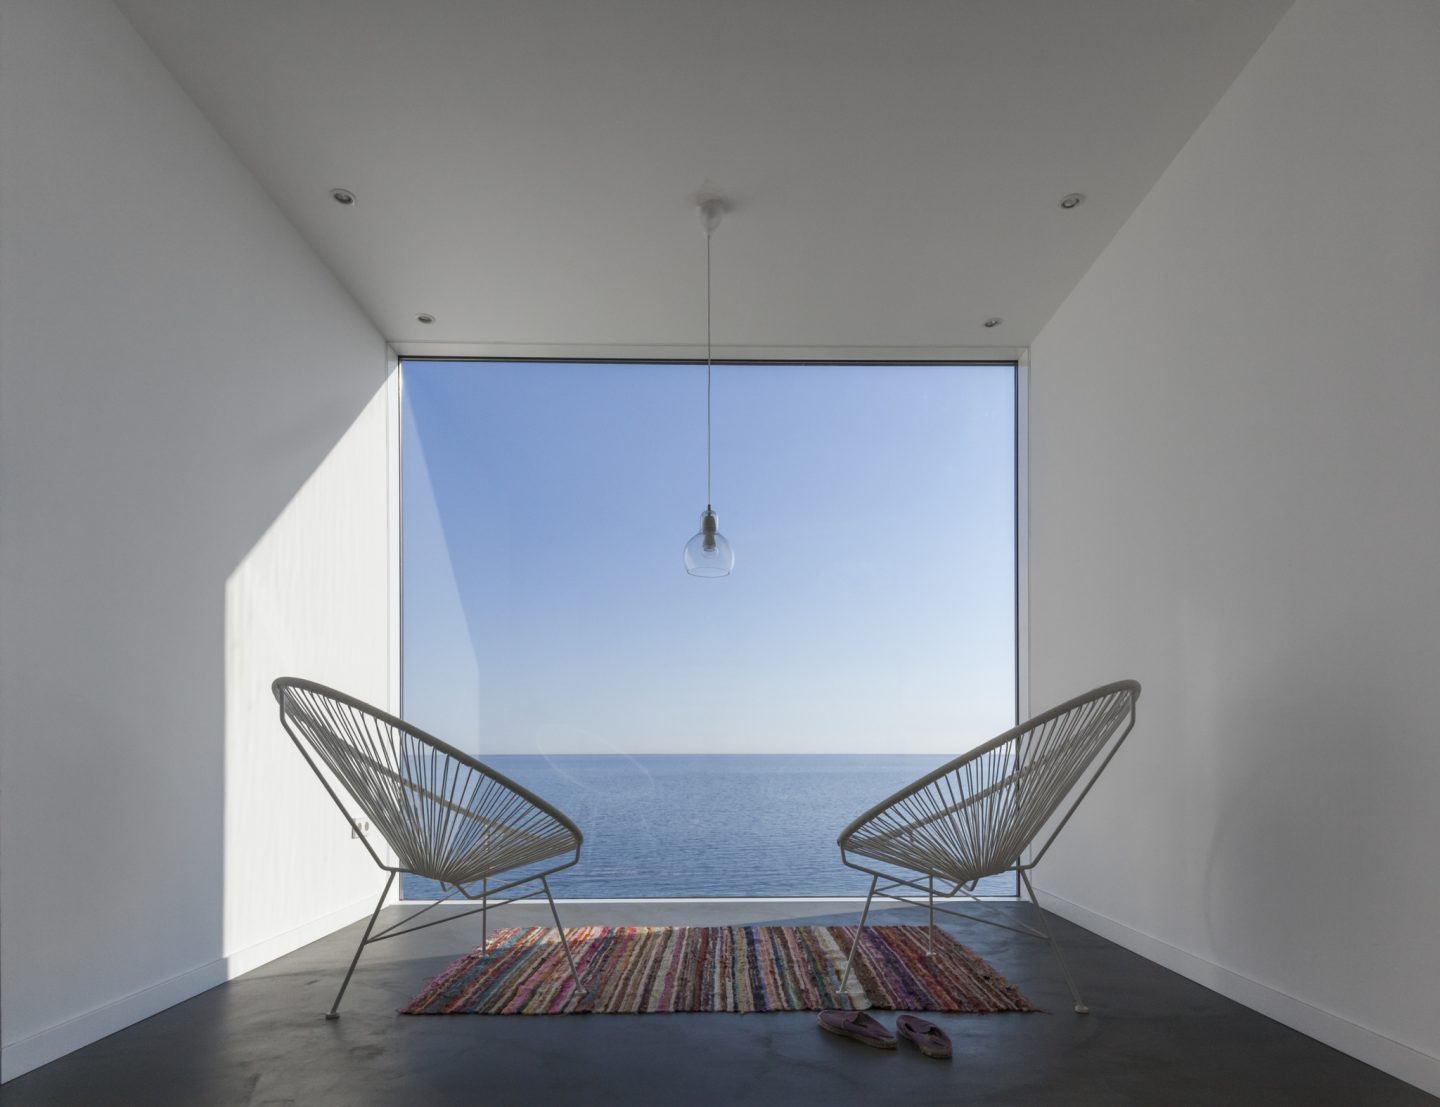 Two modern wire chairs in a small space overlooking the ocean. A wall of glass provides an unobstructed view. #beachhouse #oceanfront #modernarchitecture #wallofglass